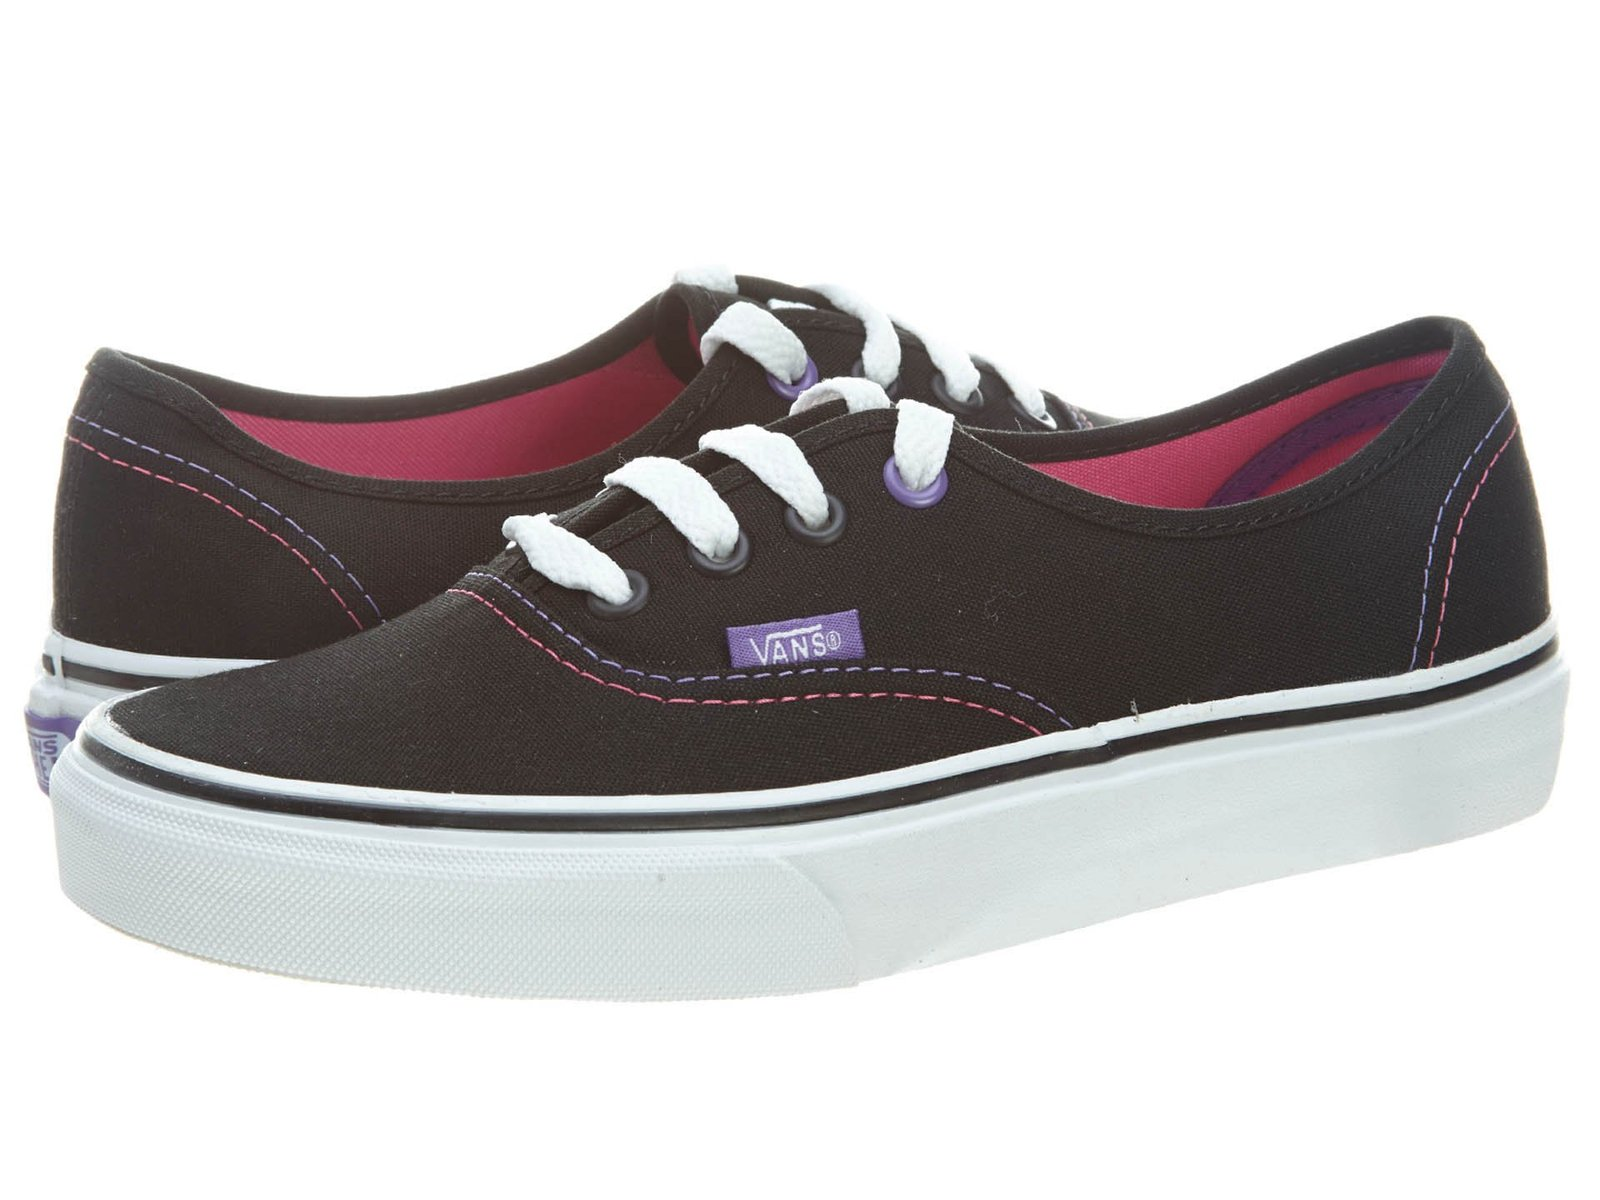 4103daf22d5 Vans Authentic Unisex Style  VN-ONJV-LDL and 50 similar items